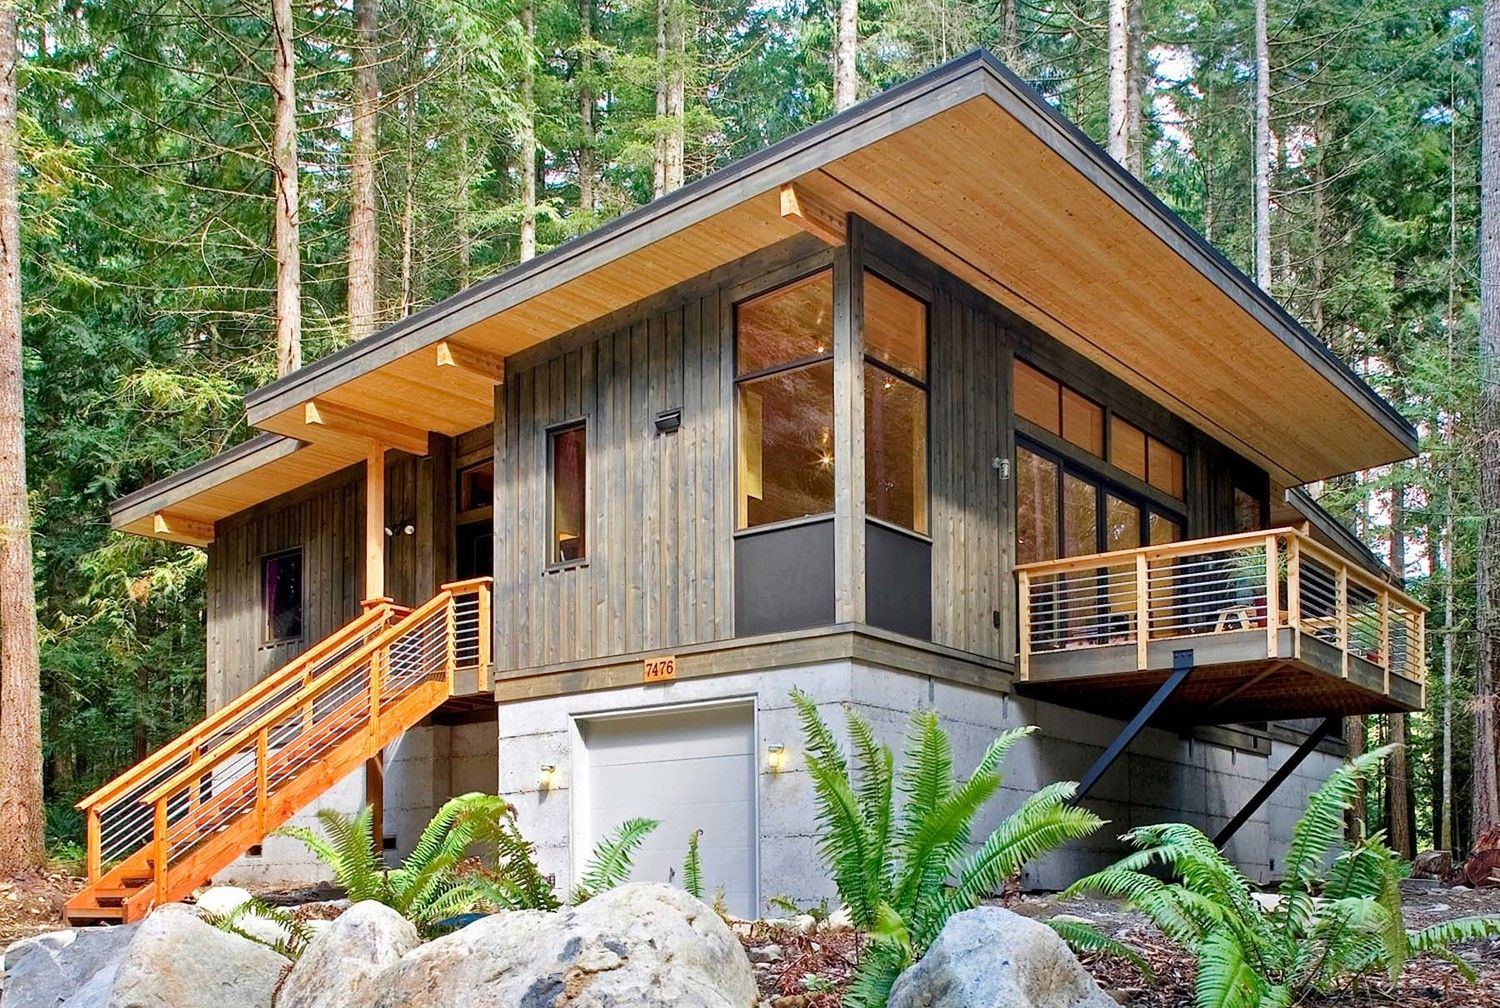 20 Of The Most Beautiful Prefab Cabin Designs Timber